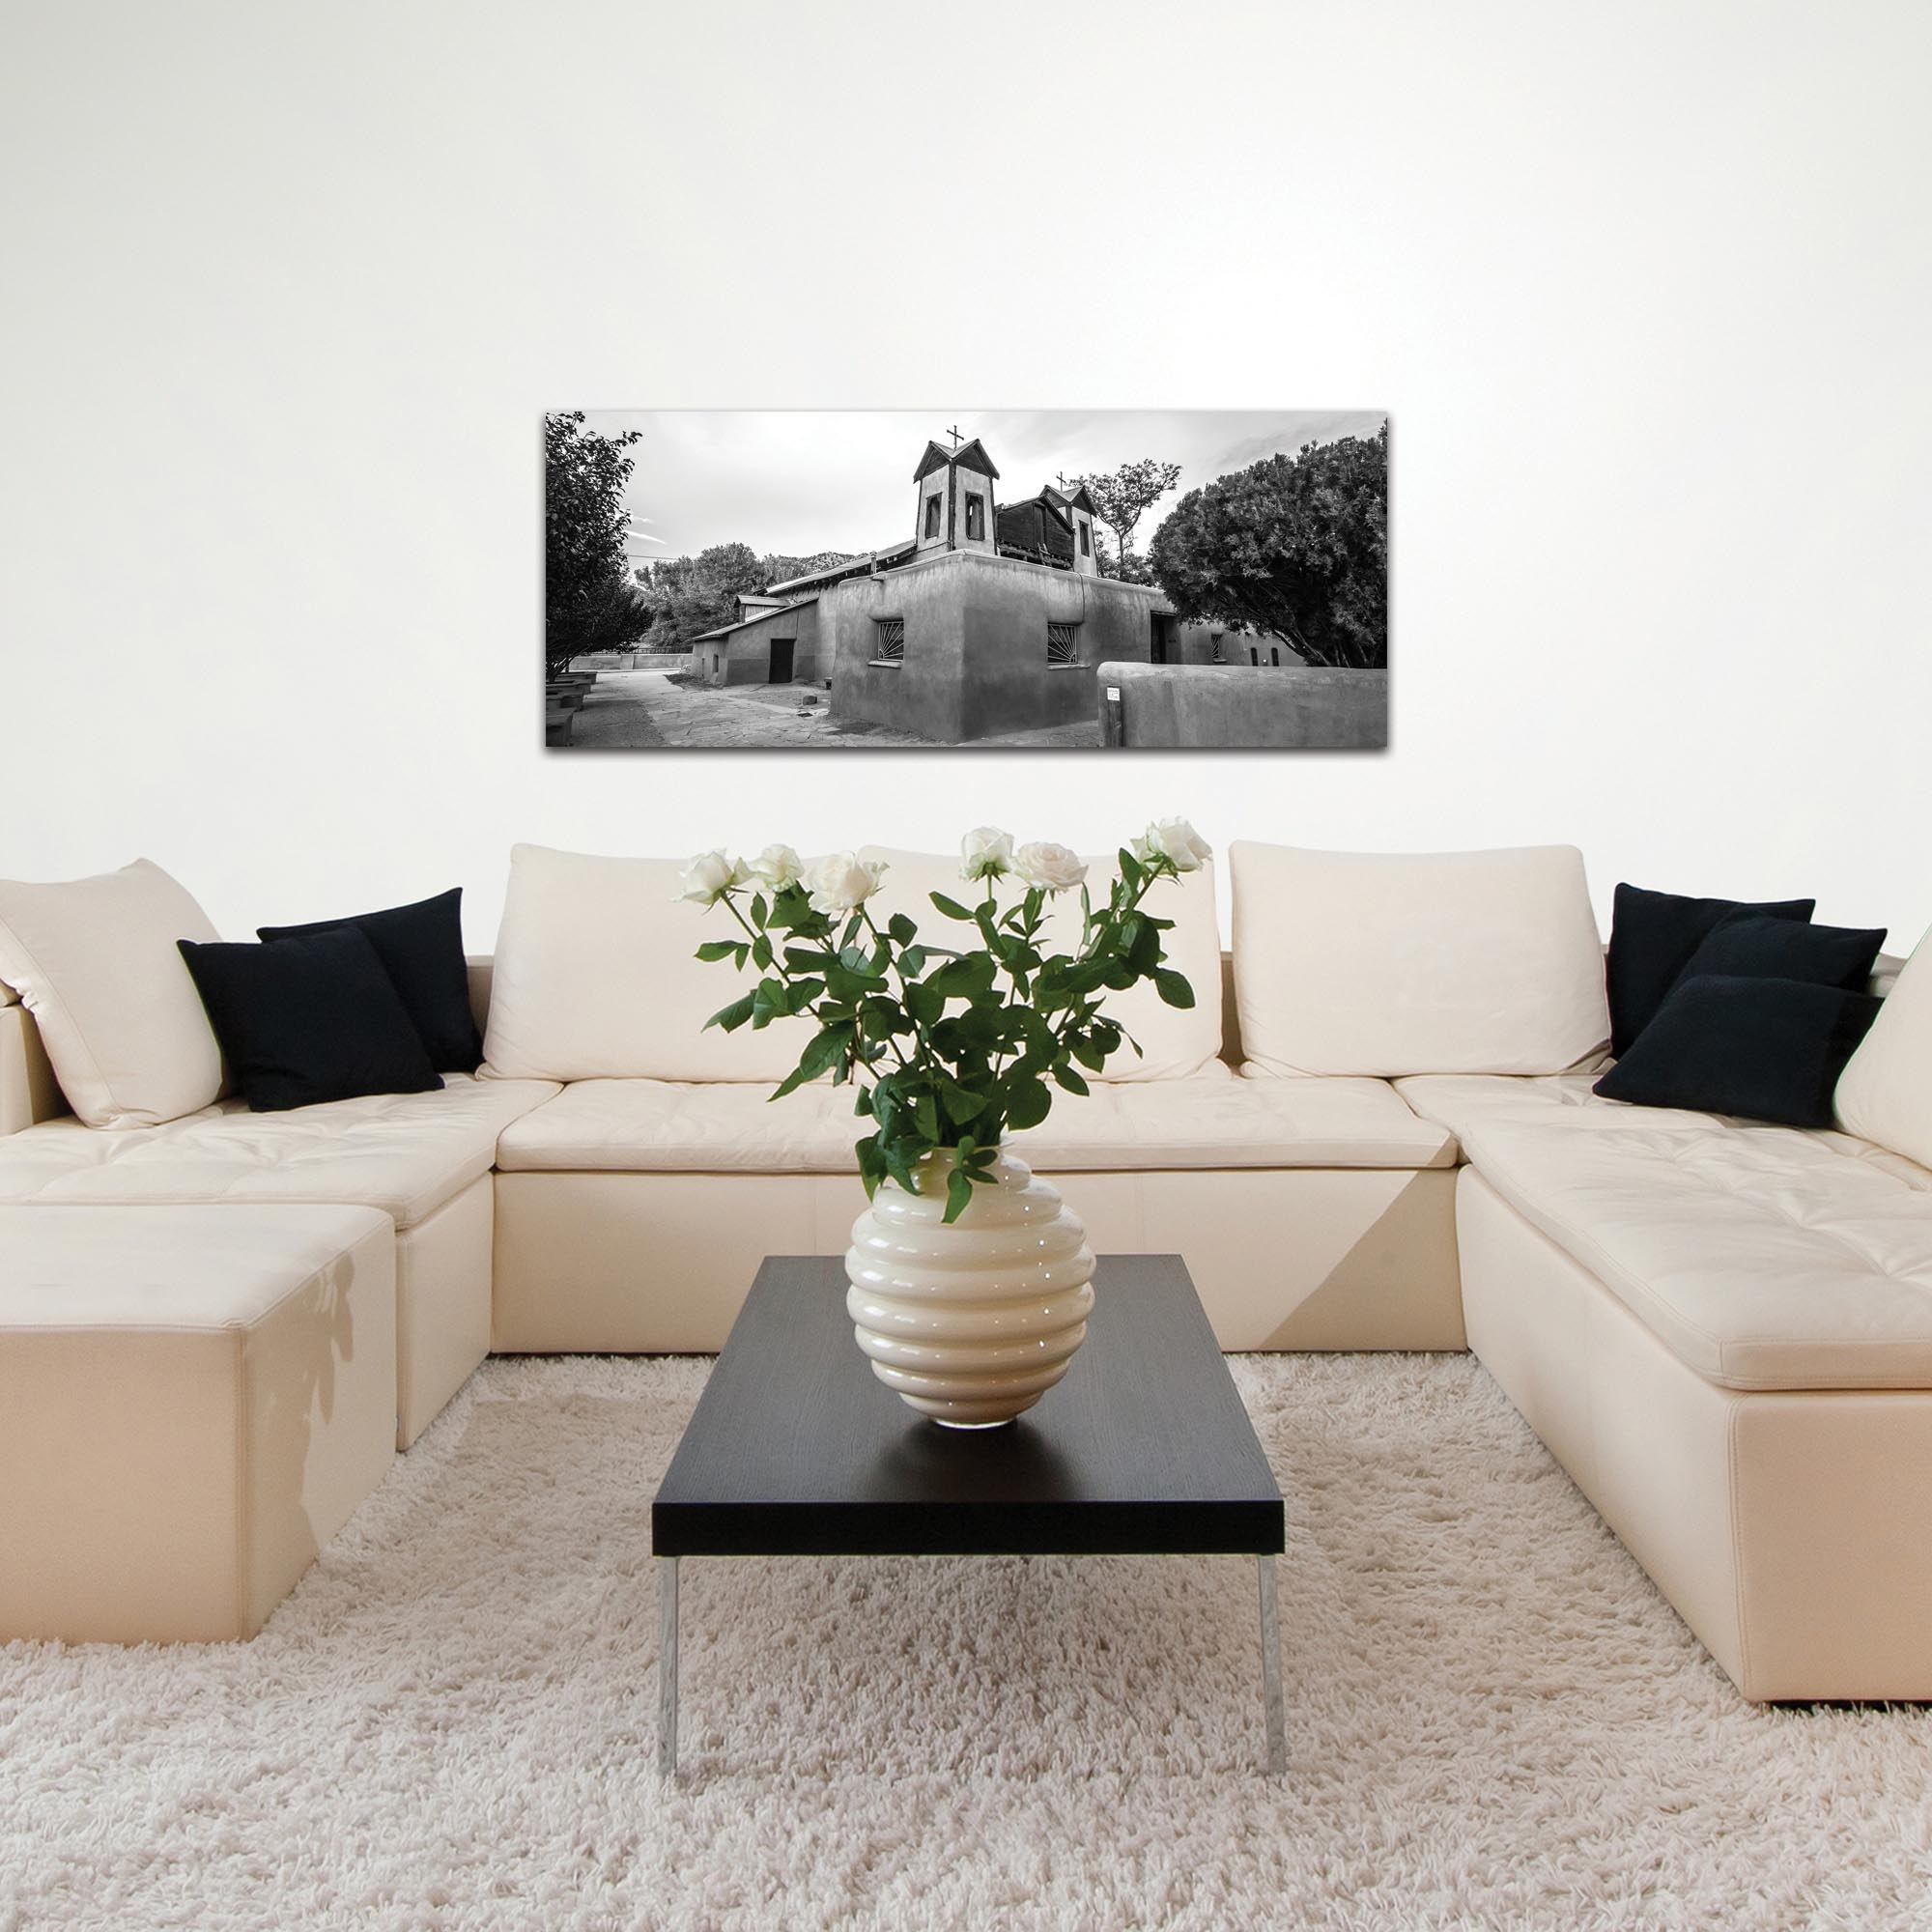 Eclectic Wall Art 'The Church' - Architecture Decor on Metal or Plexiglass - Lifestyle View